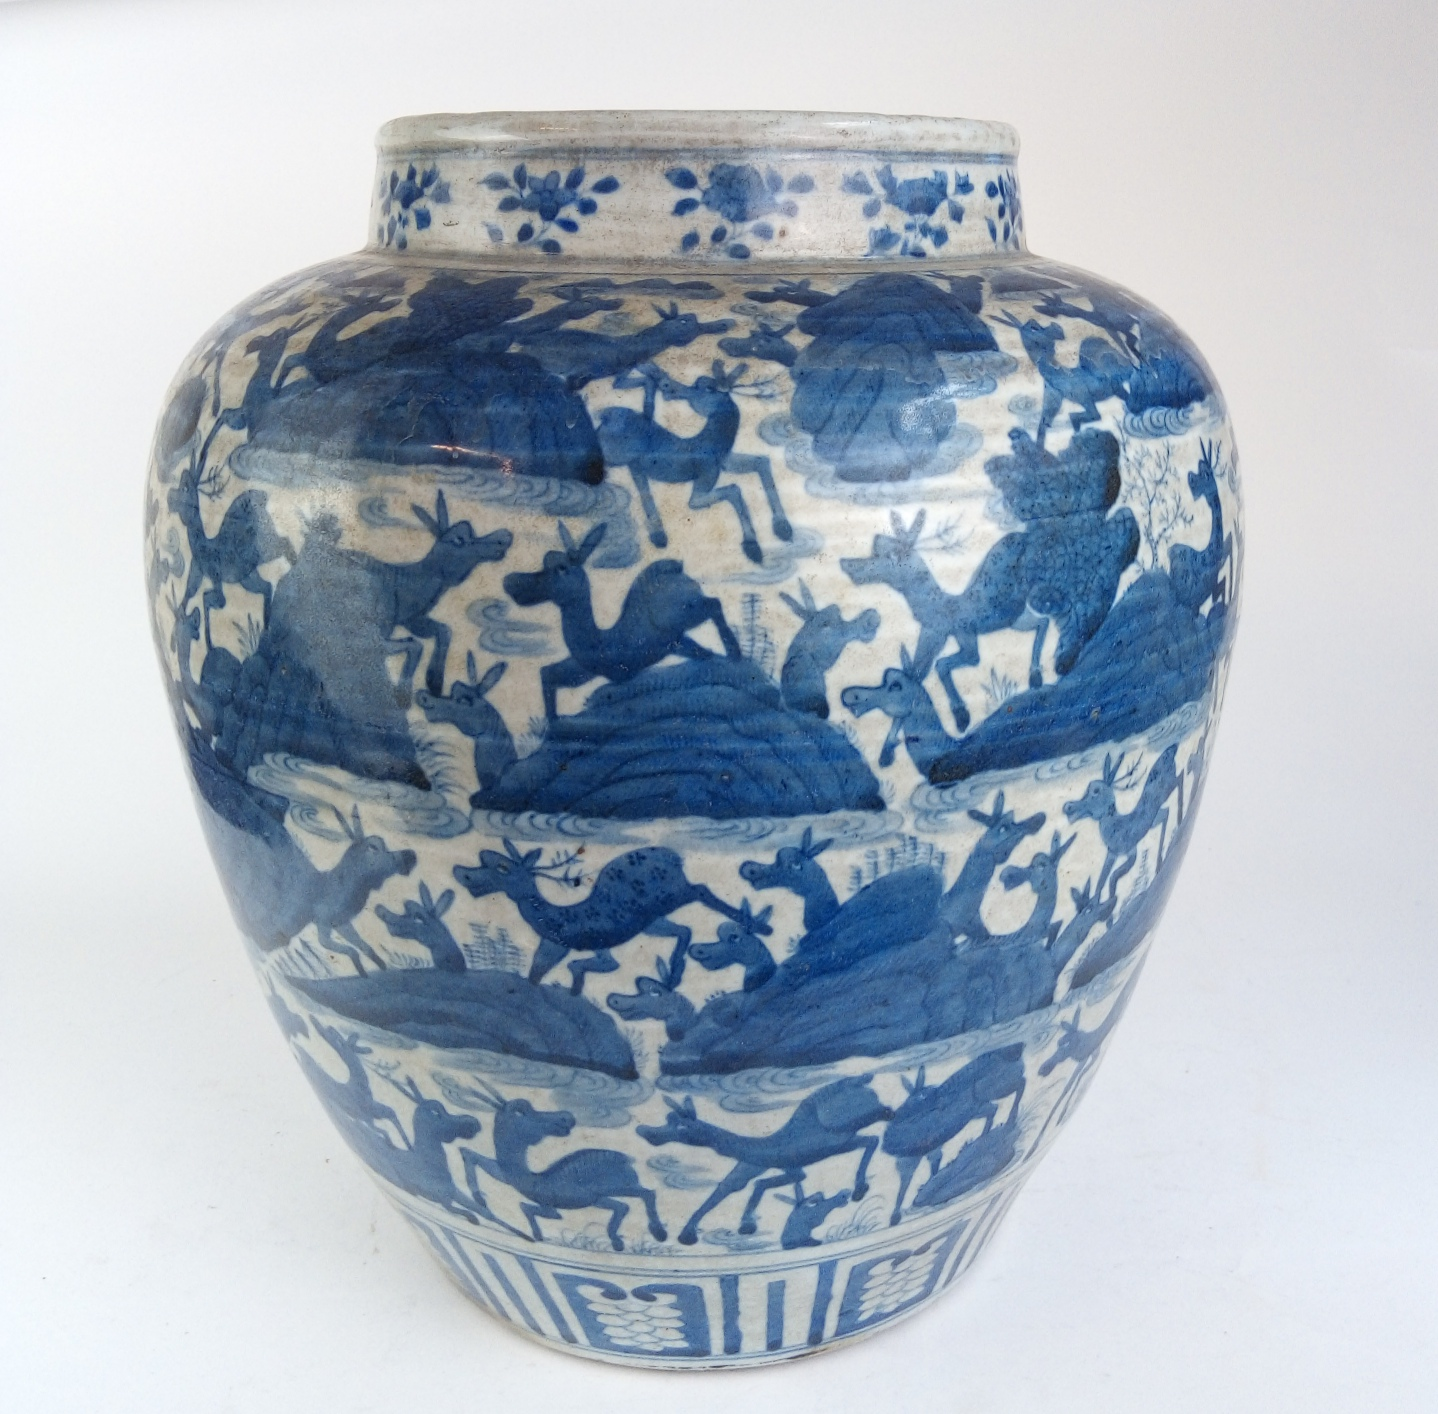 A LARGE CHINESE BLUE AND WHITE OVOID POTTERY VASE Decorated with multi deer with stylised rocks,